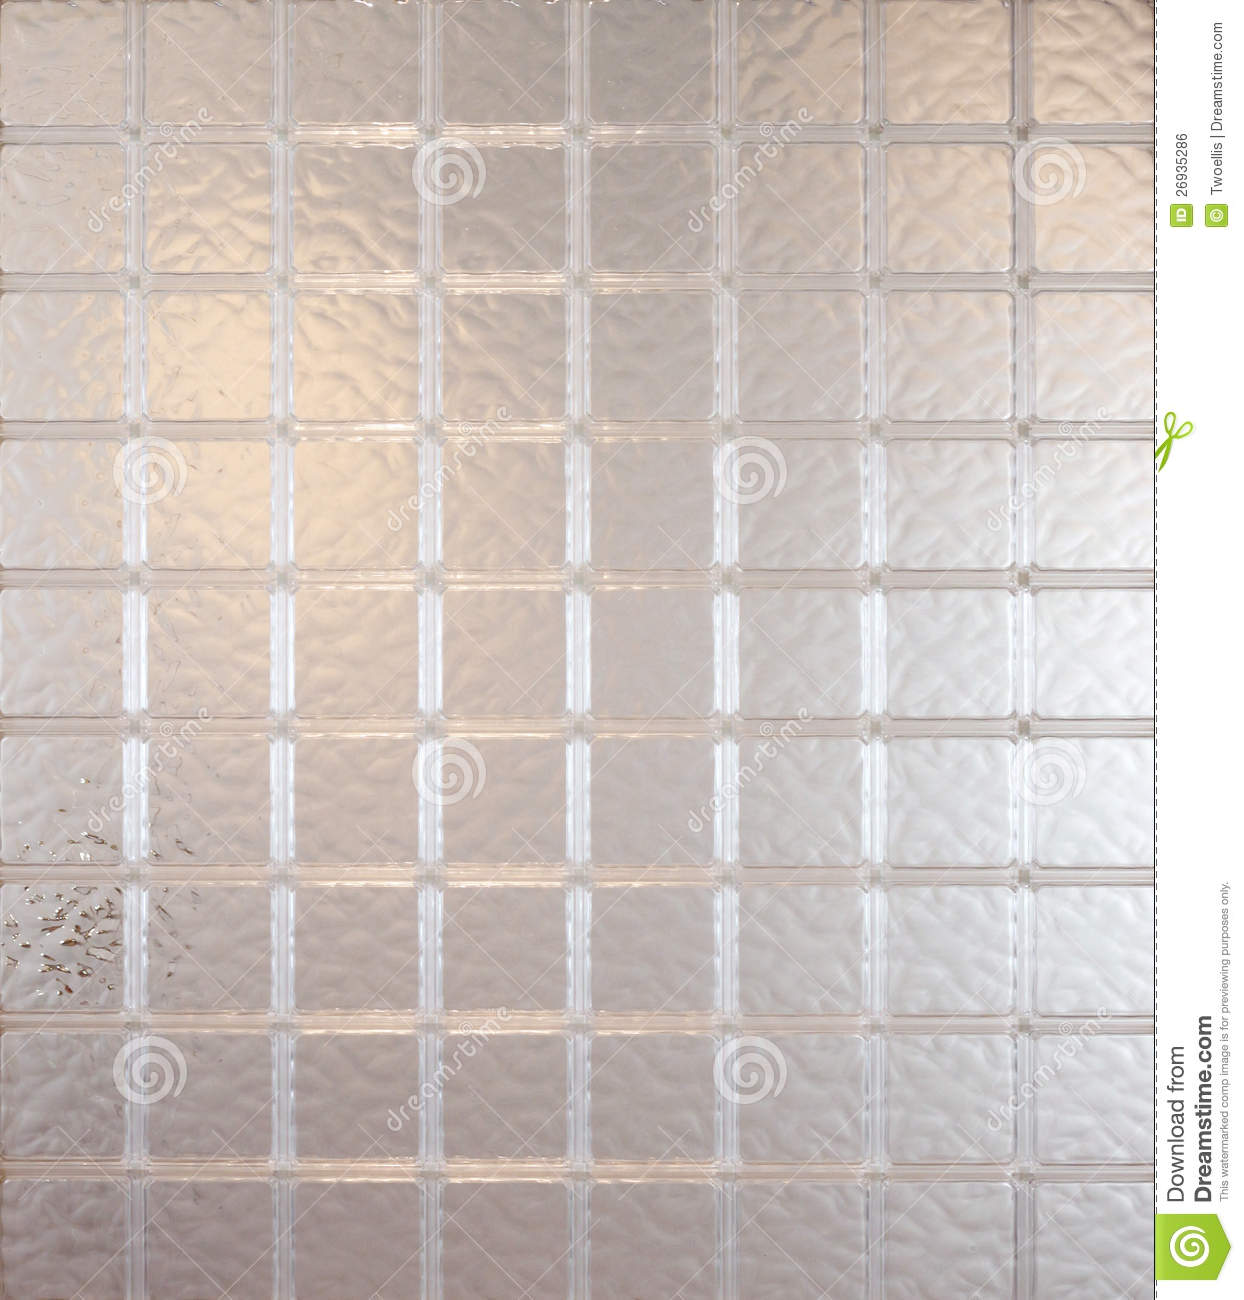 Glass Block Window Royalty Free Stock Image Image 26935286